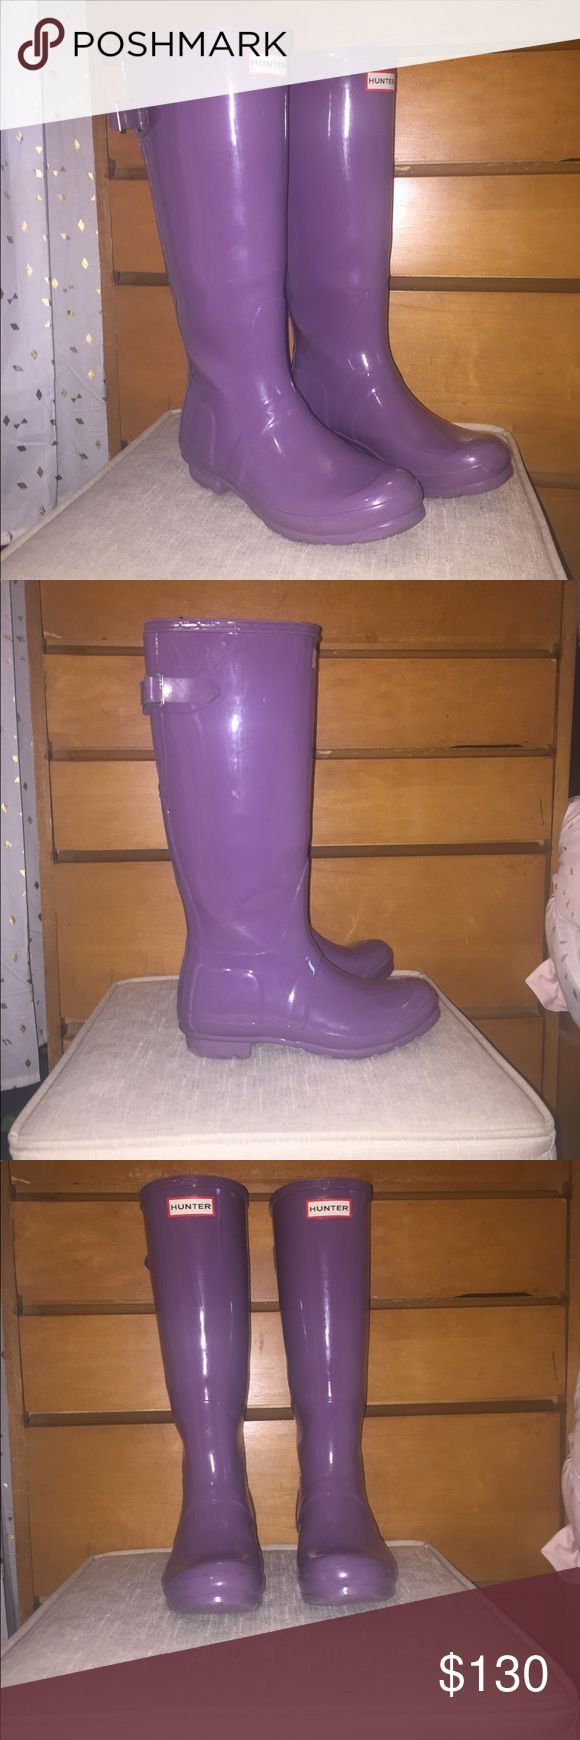 Purple hunter boots with adjustable strap Only worn a few times! But they were too small I need some 8! Hunter Shoes Winter & Rain Boots